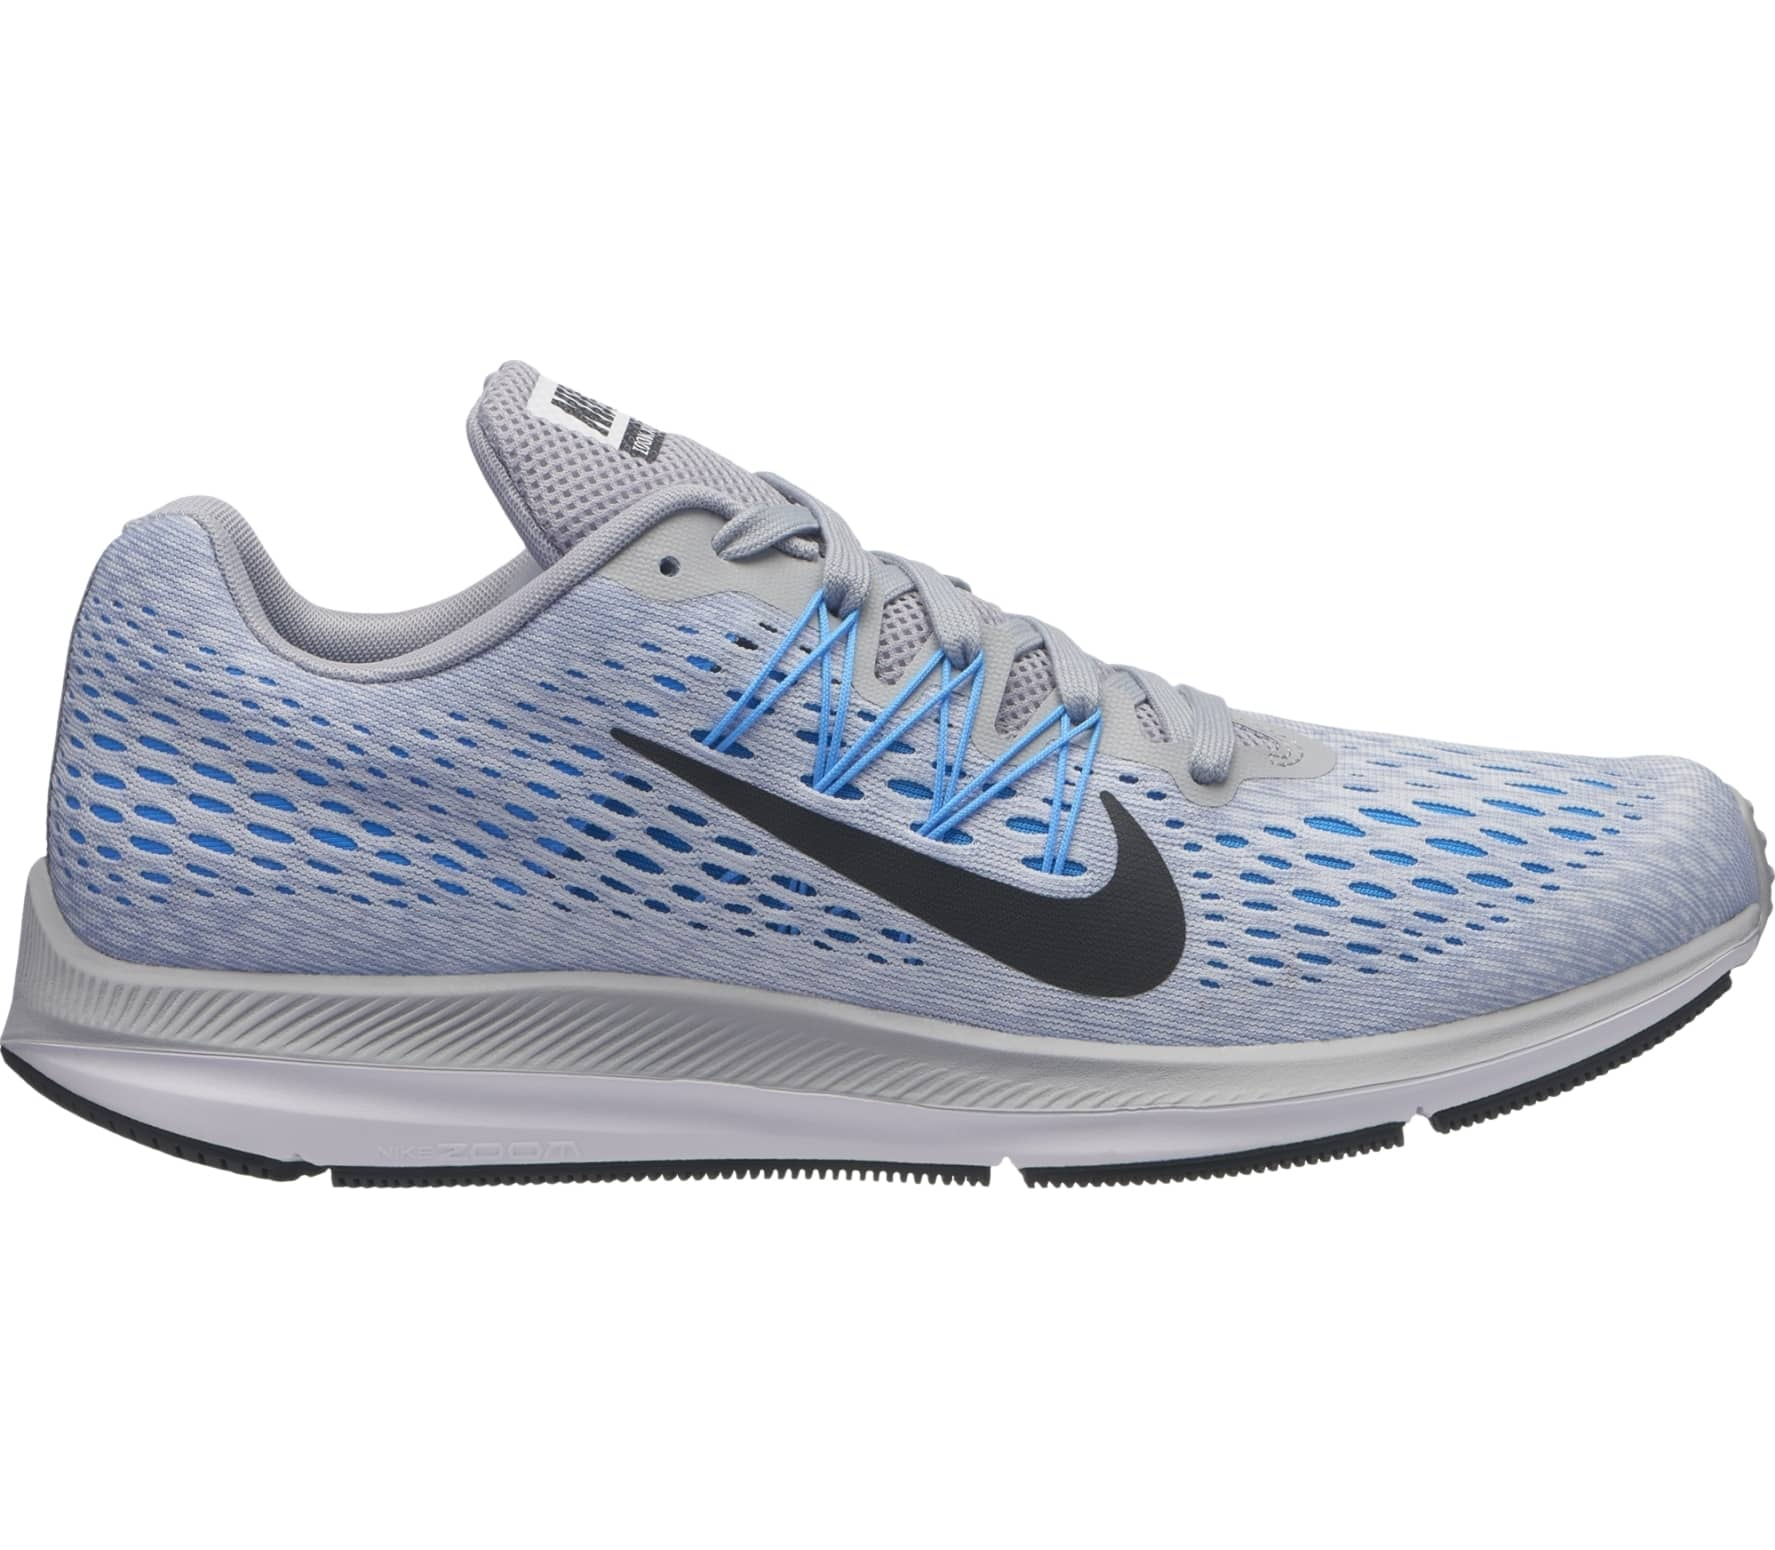 new concept 38b79 5fa1f Nike - Air Zoom Winflo 5 men's running shoes (grey)